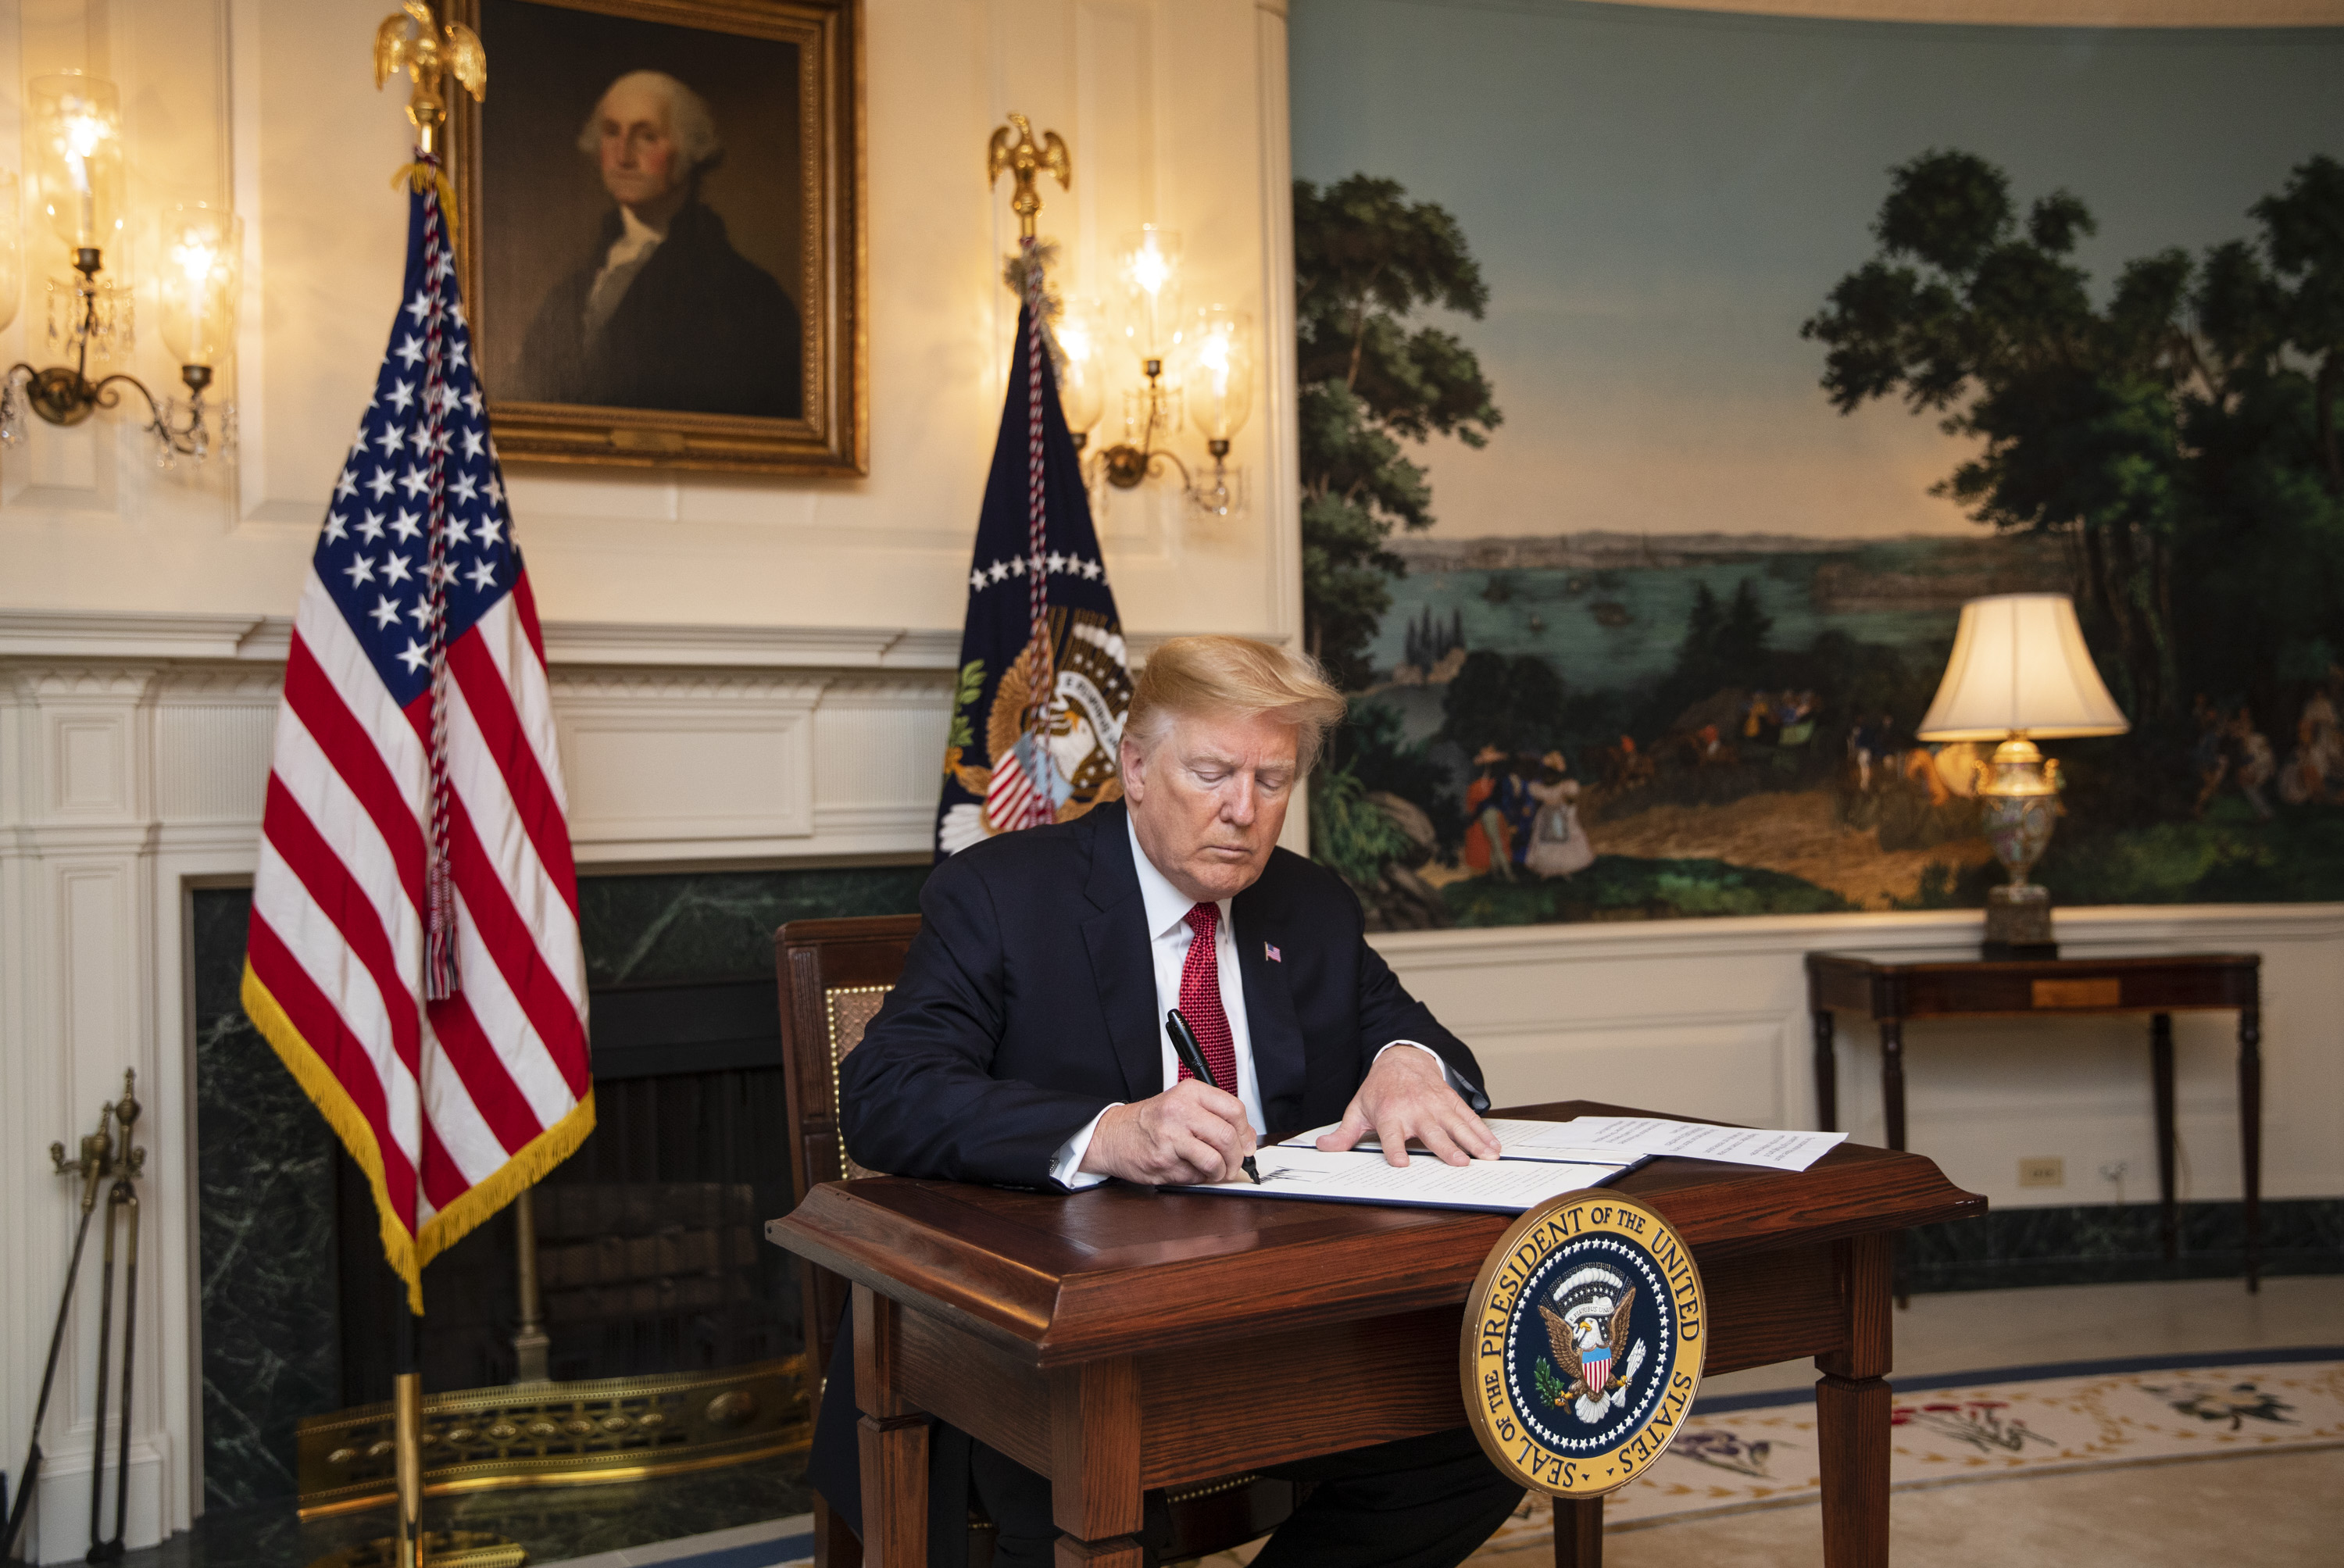 President Trump signs an immigration proclamation at the White House